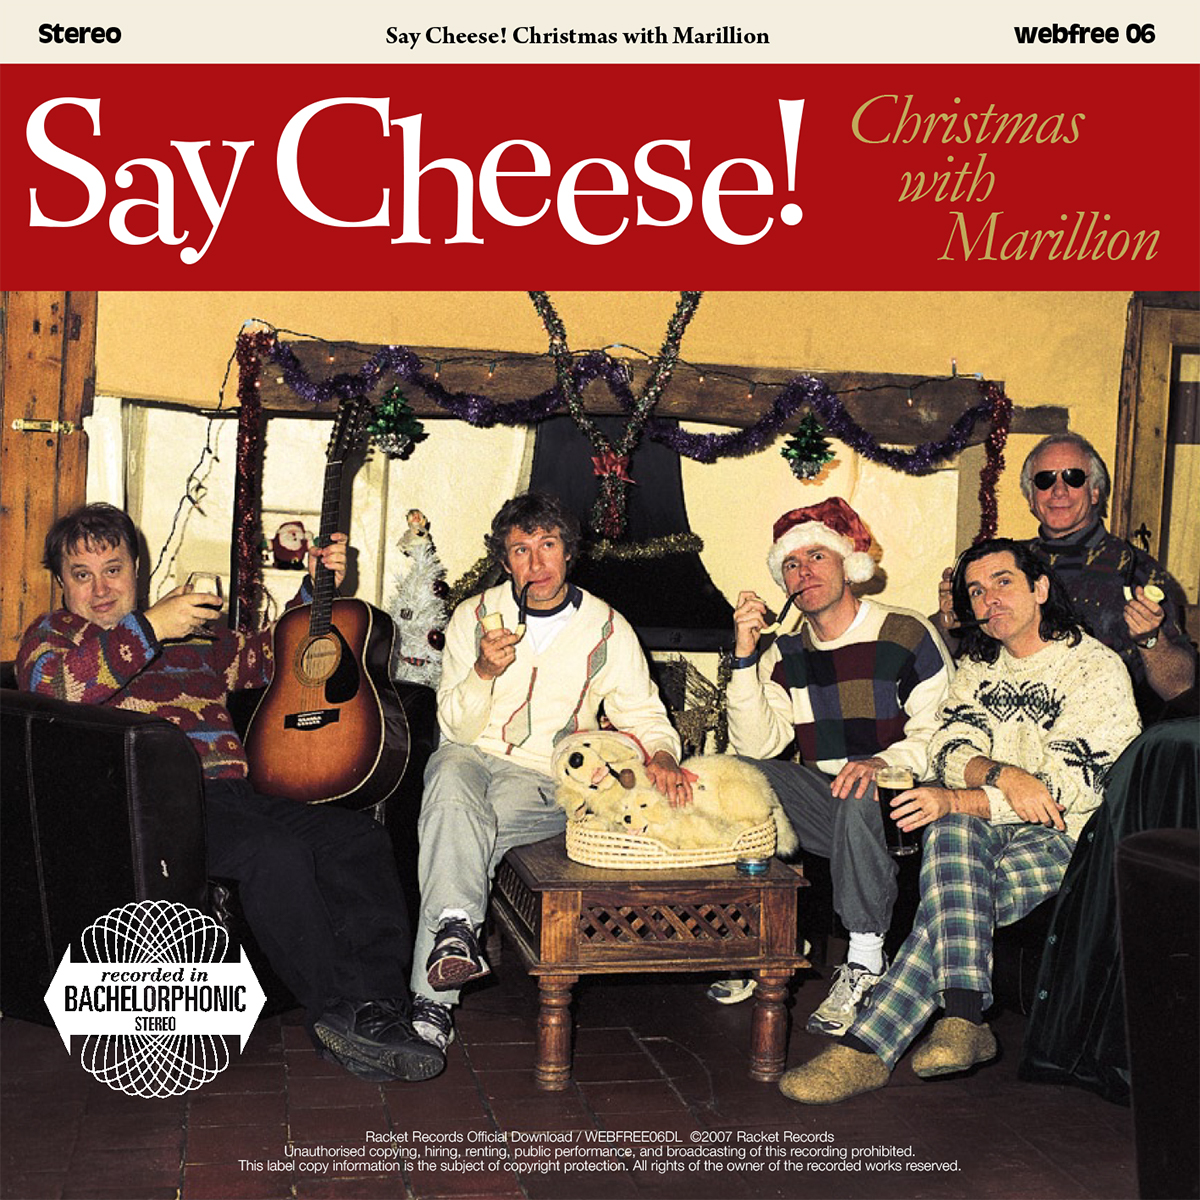 SAY CHEESE 256 KBPS ALBUM DOWNLOAD